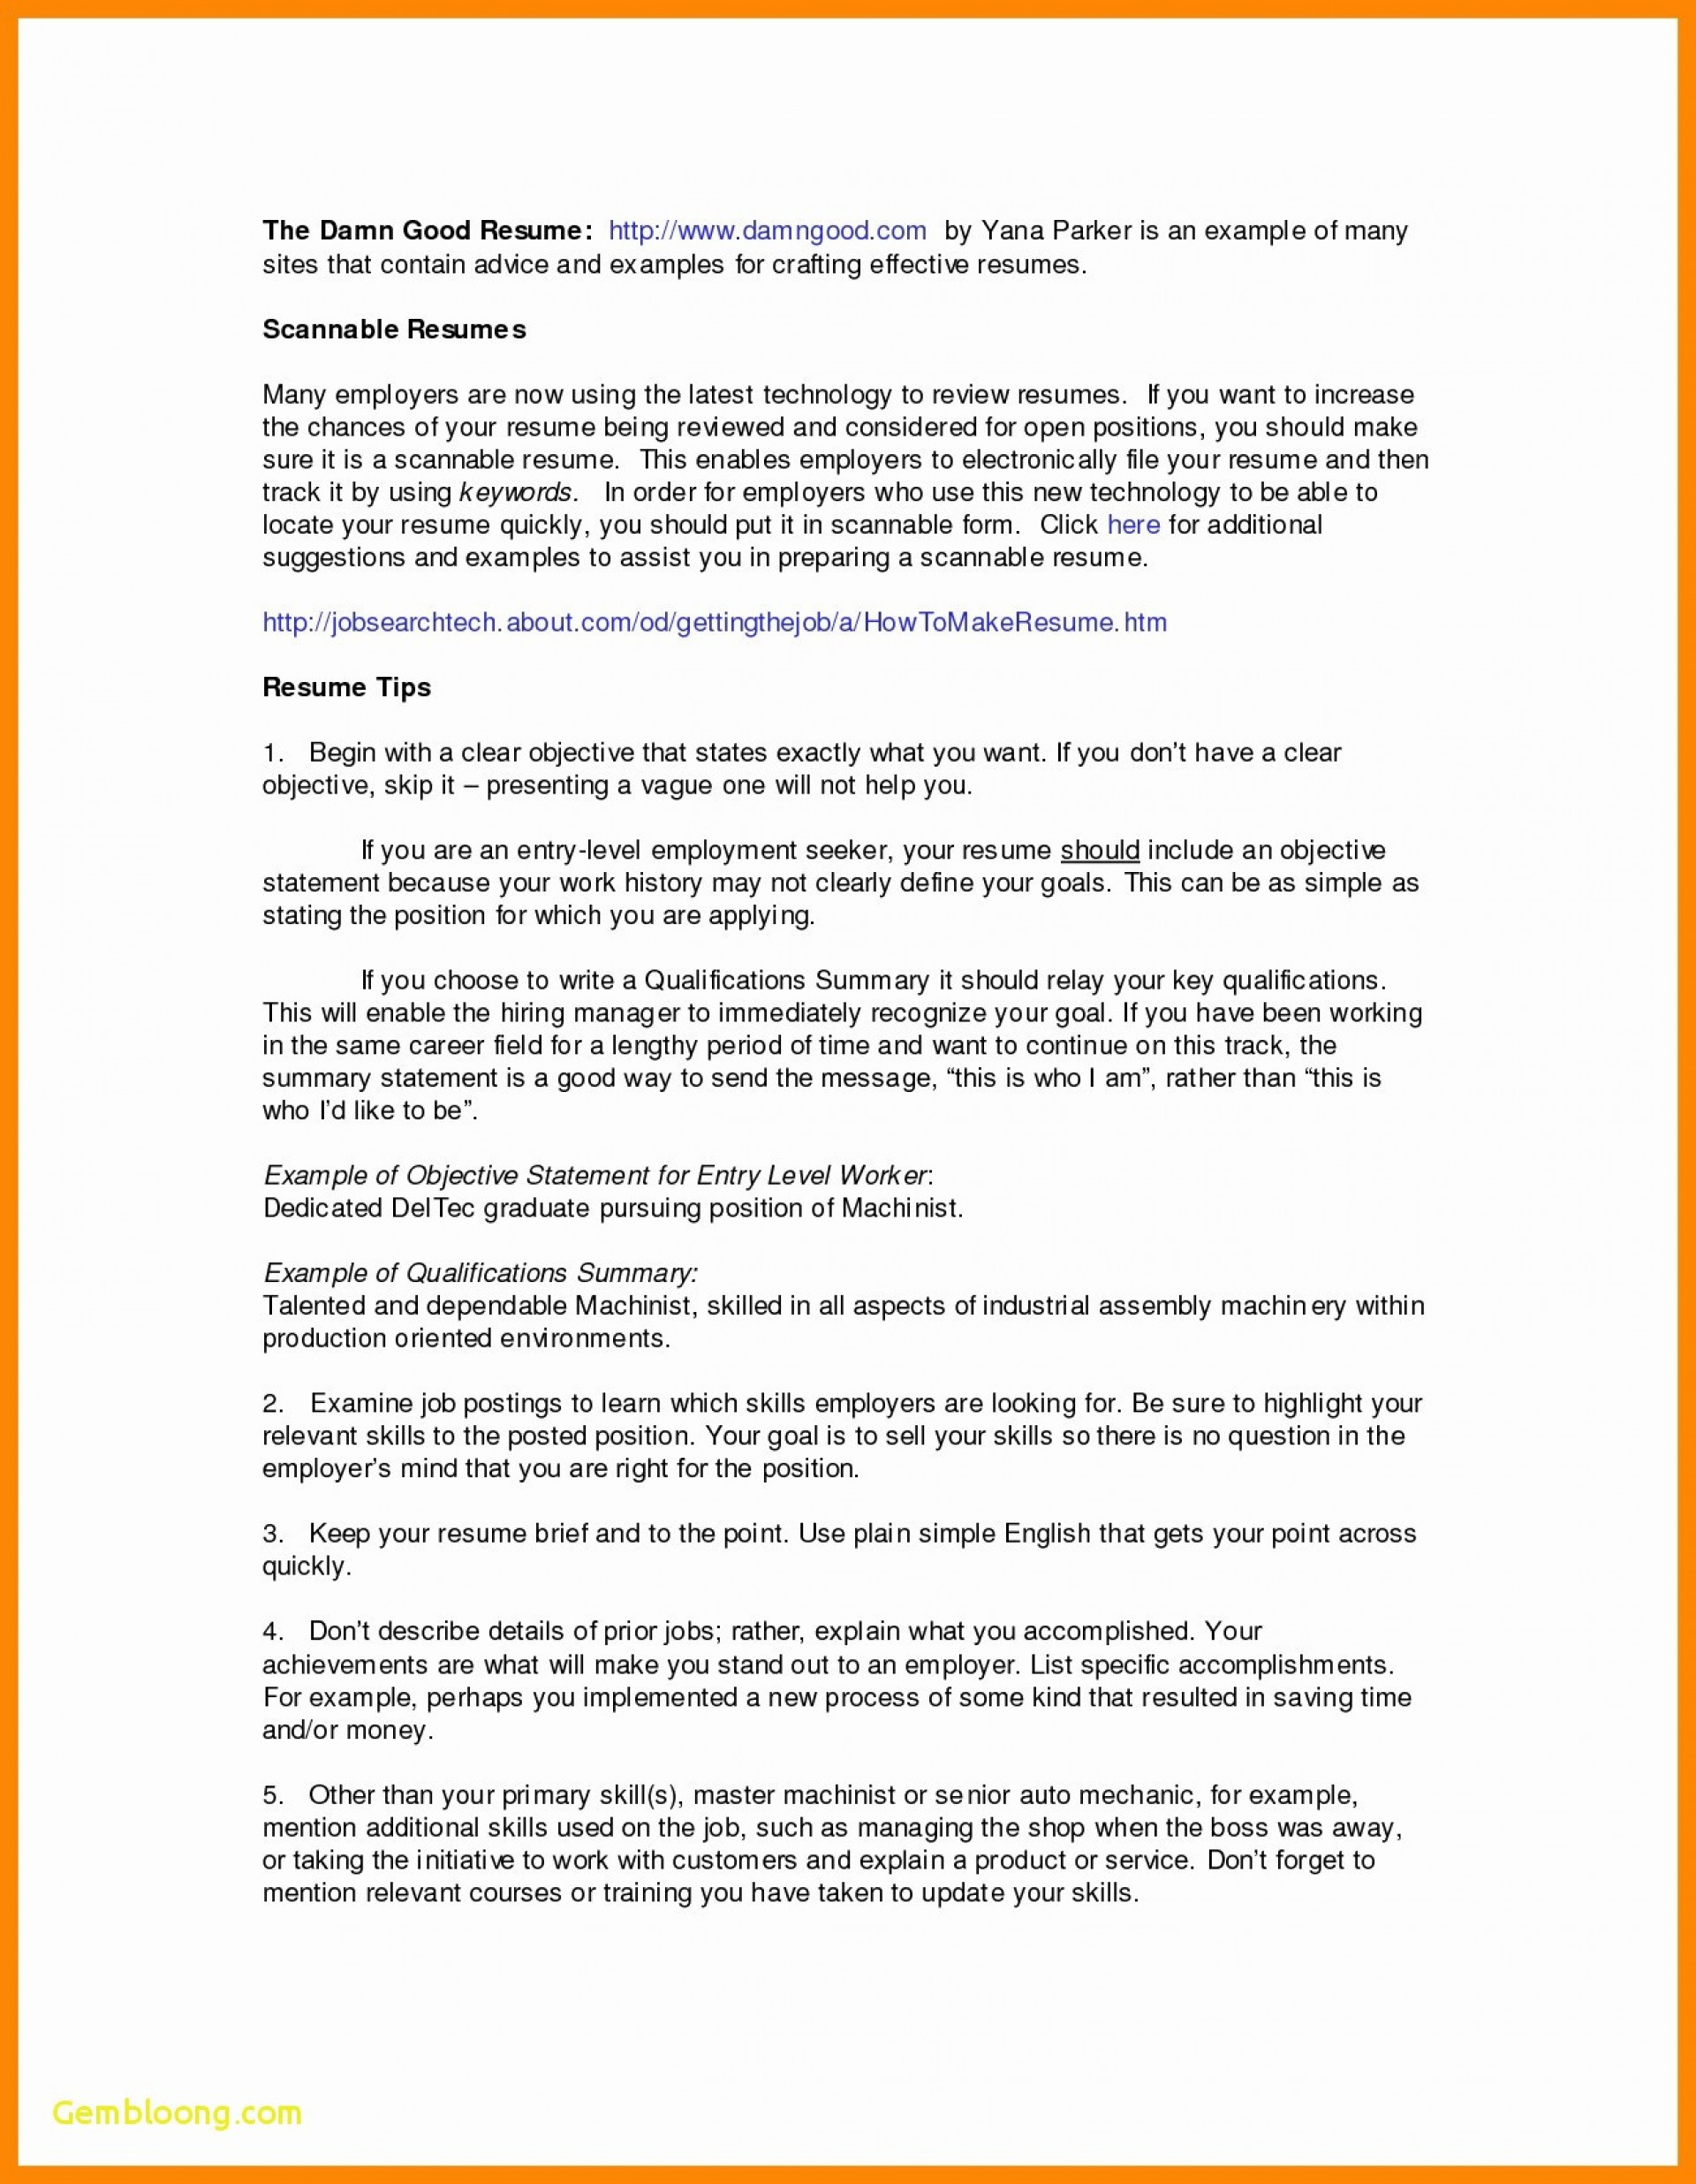 018 Pay For Research Paper Page New Resume Summary Examples Entry Level Inspirational Ceo Excellent Equal Work In India Performance Writing 1920